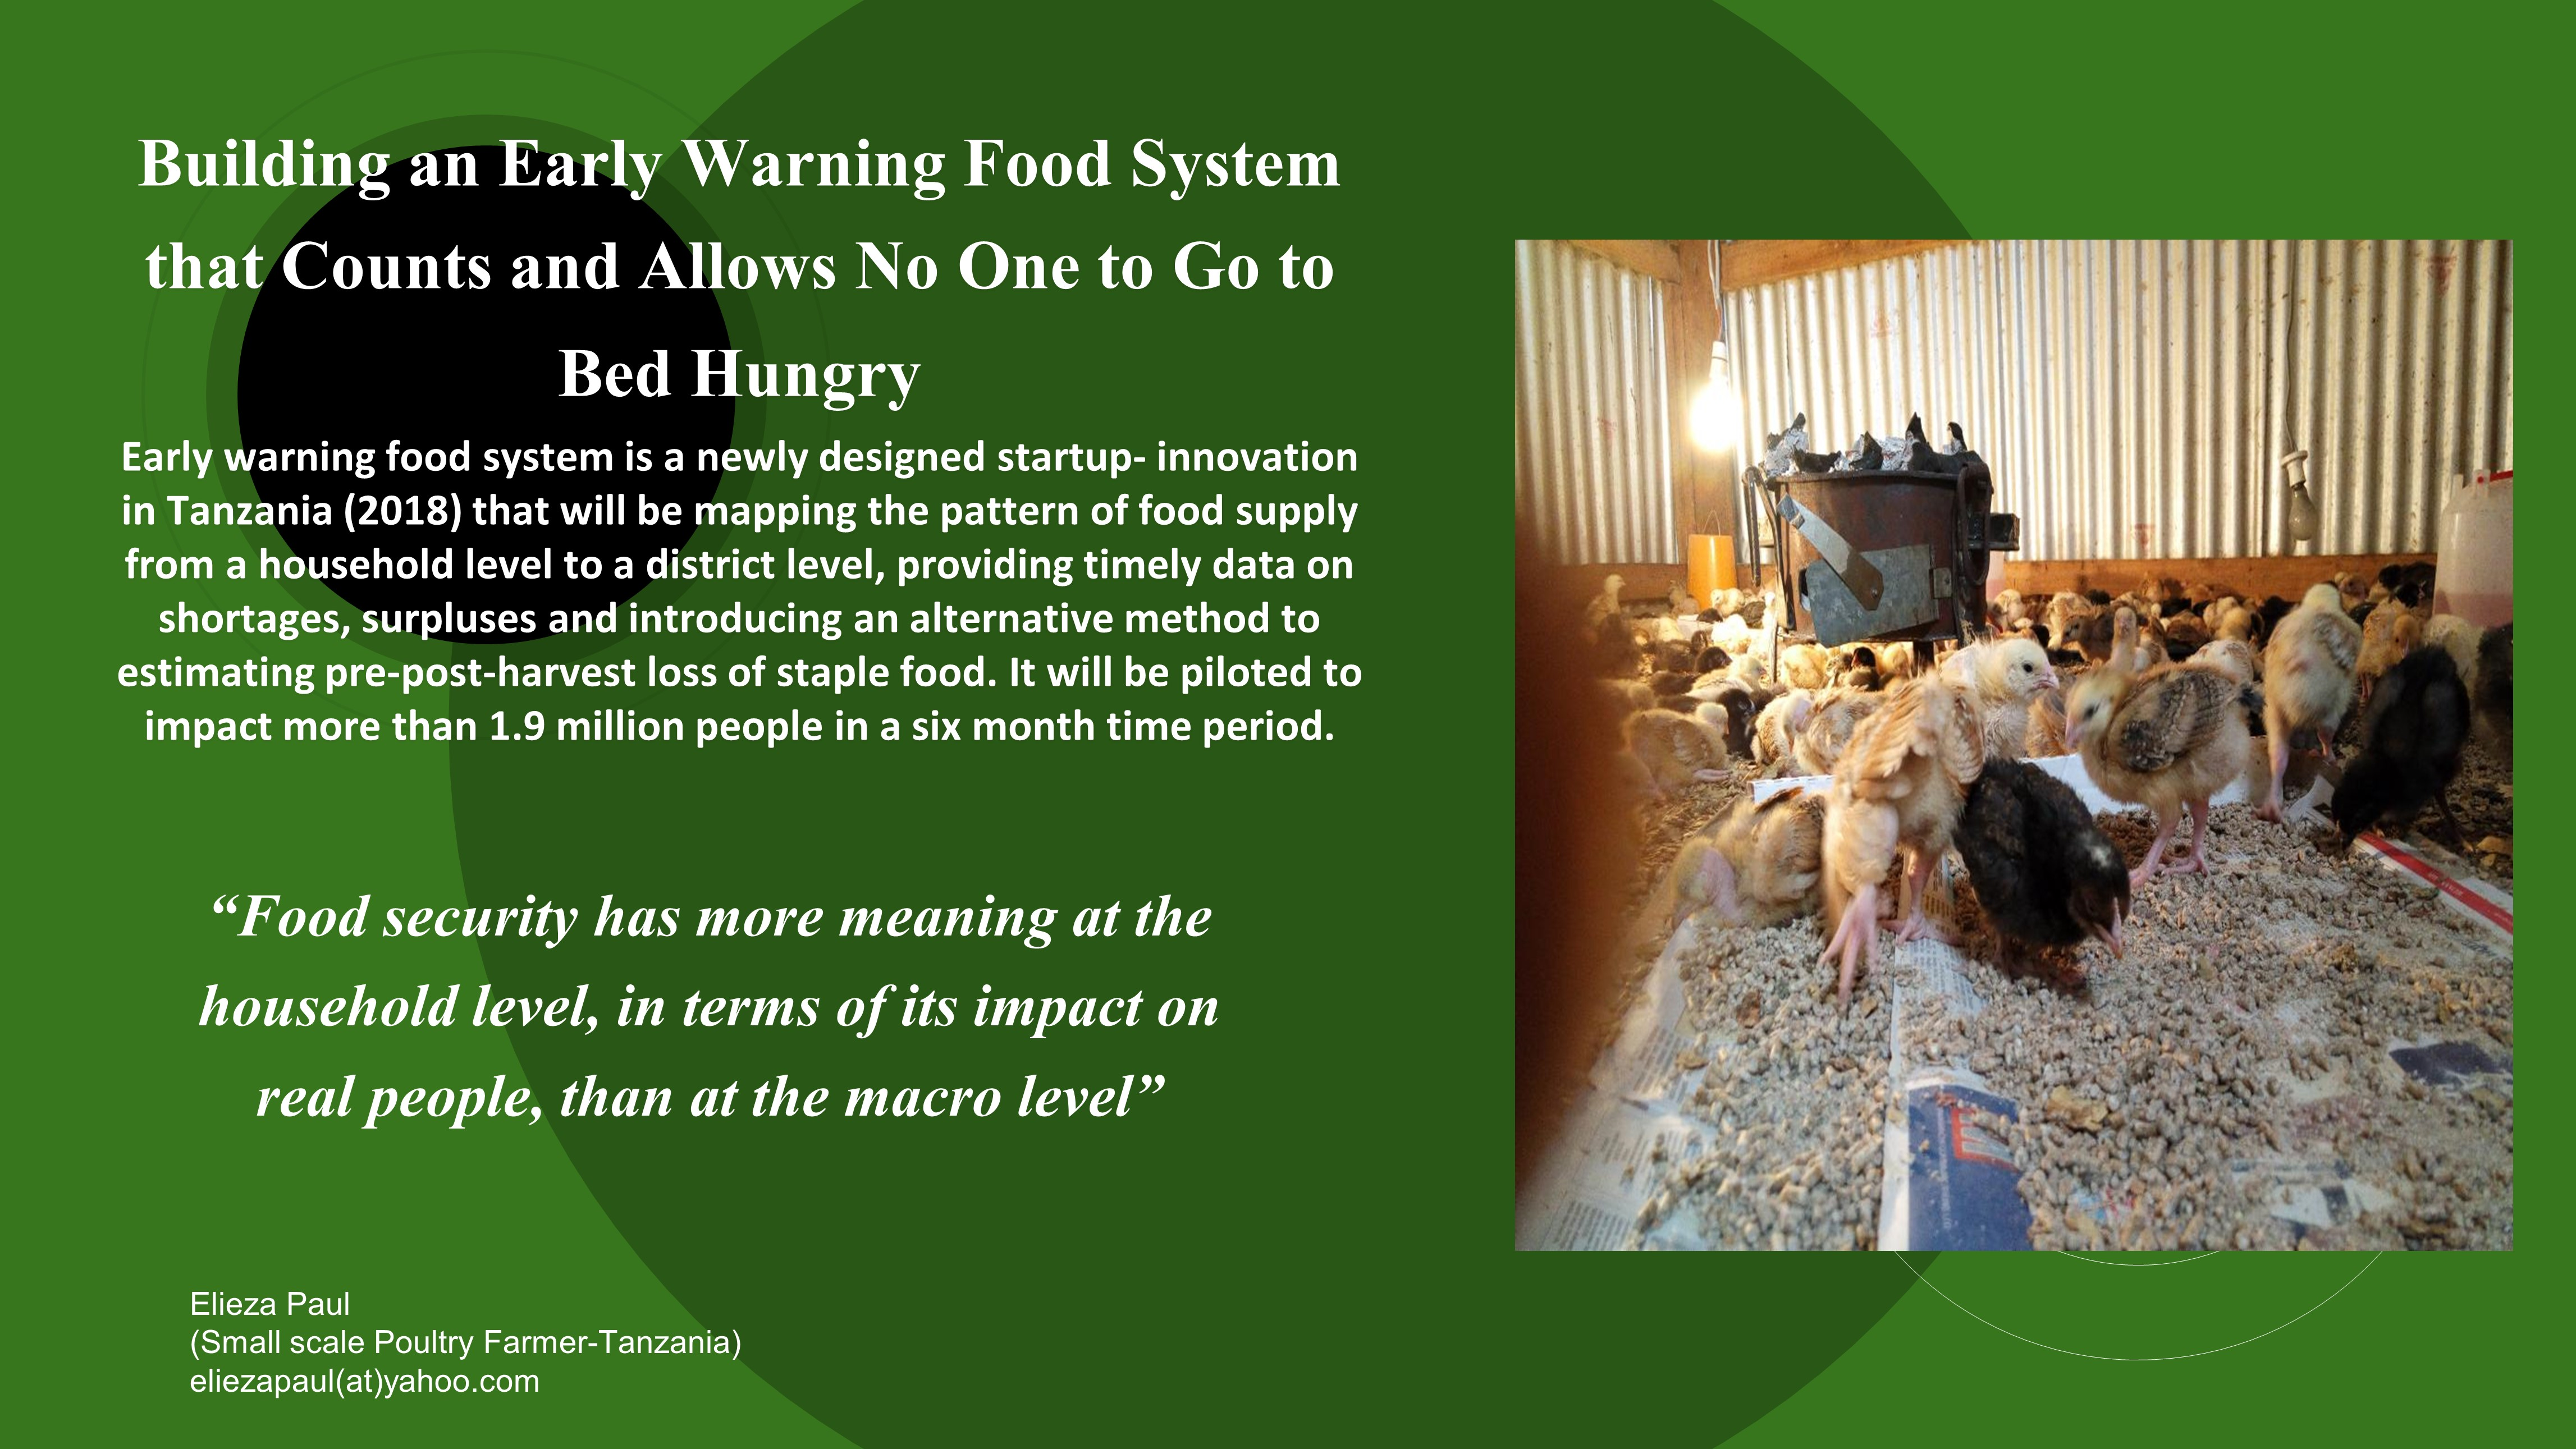 Building an Early Warning Food System that Counts